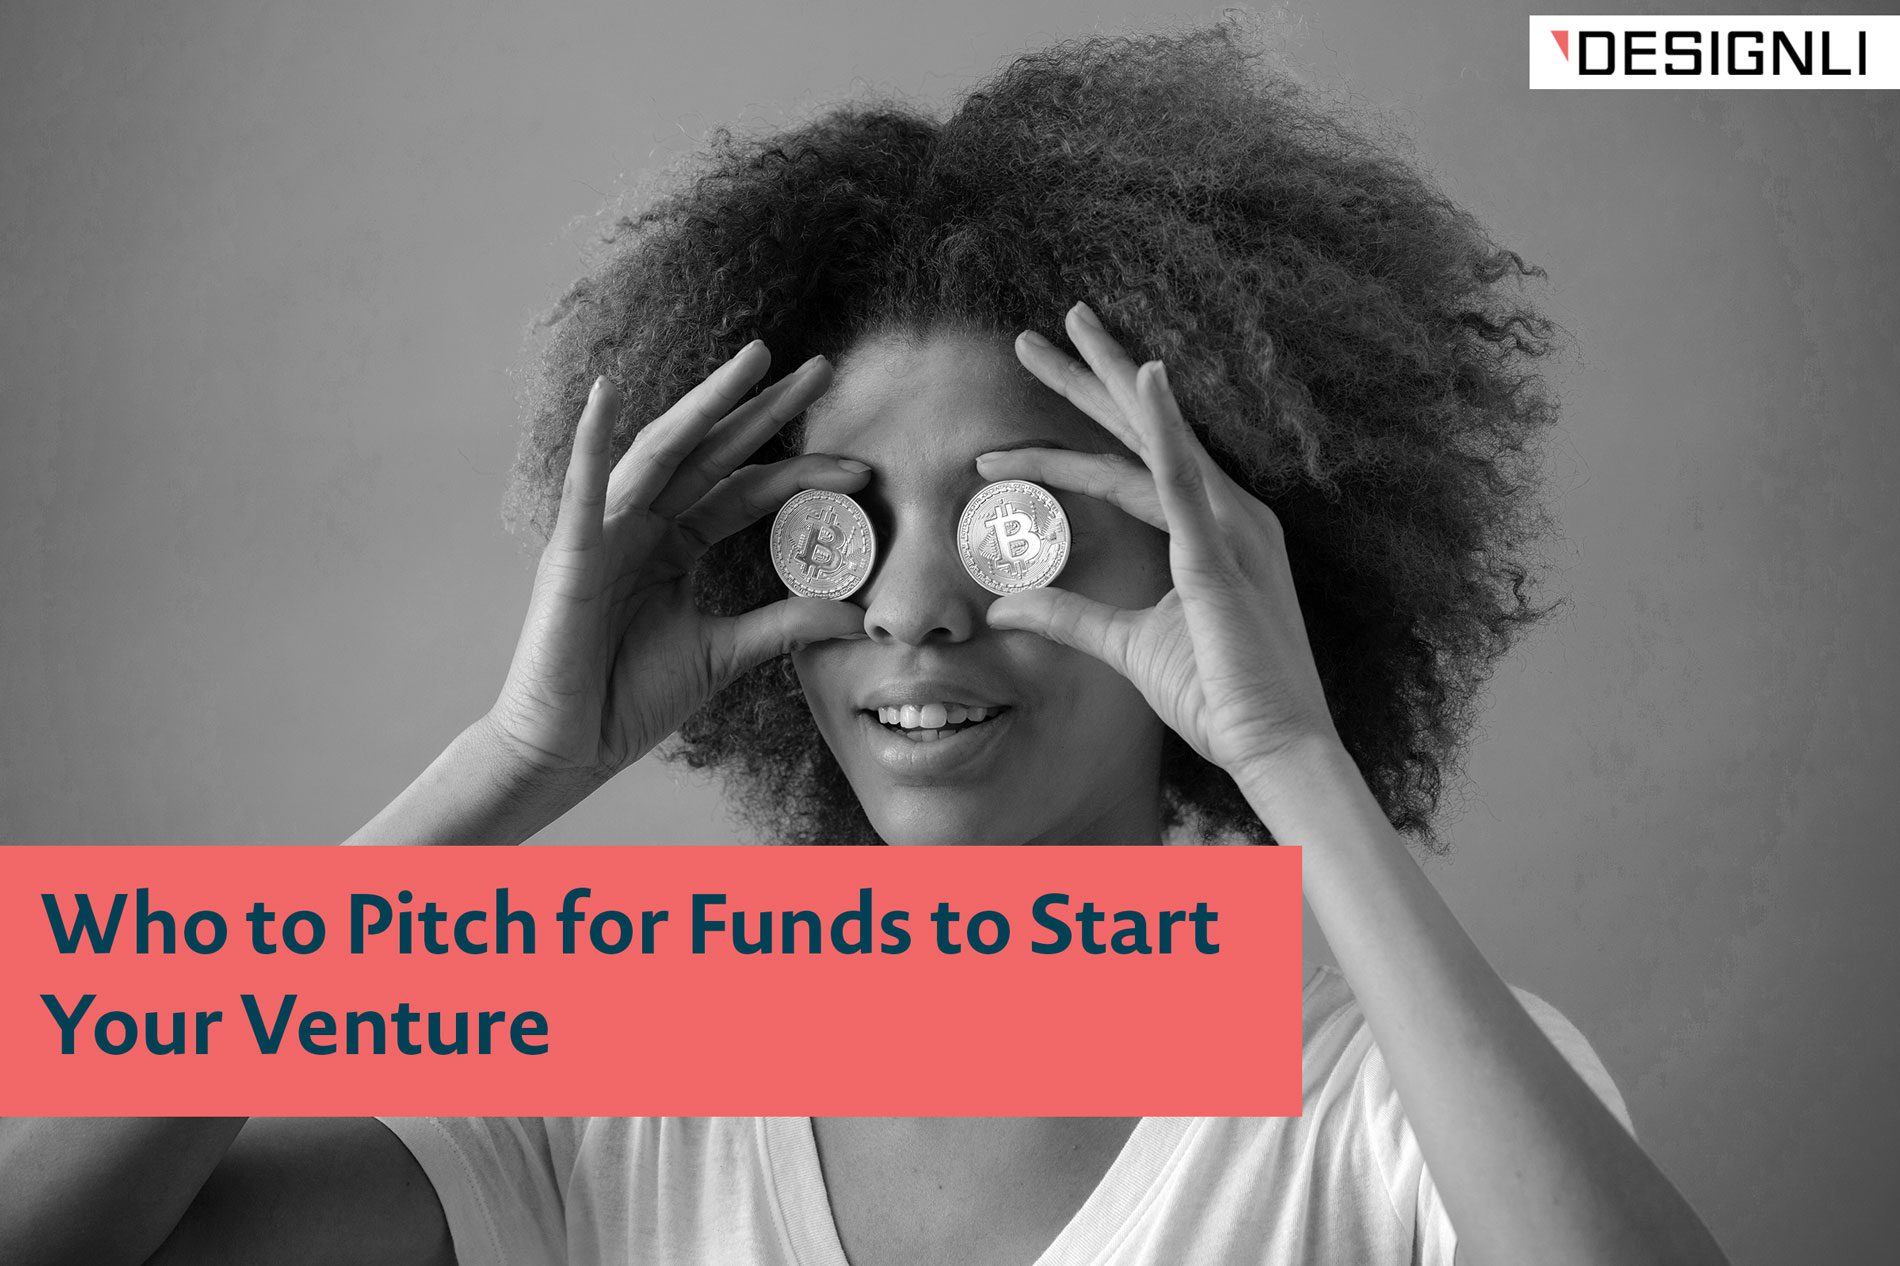 funds to start your venture